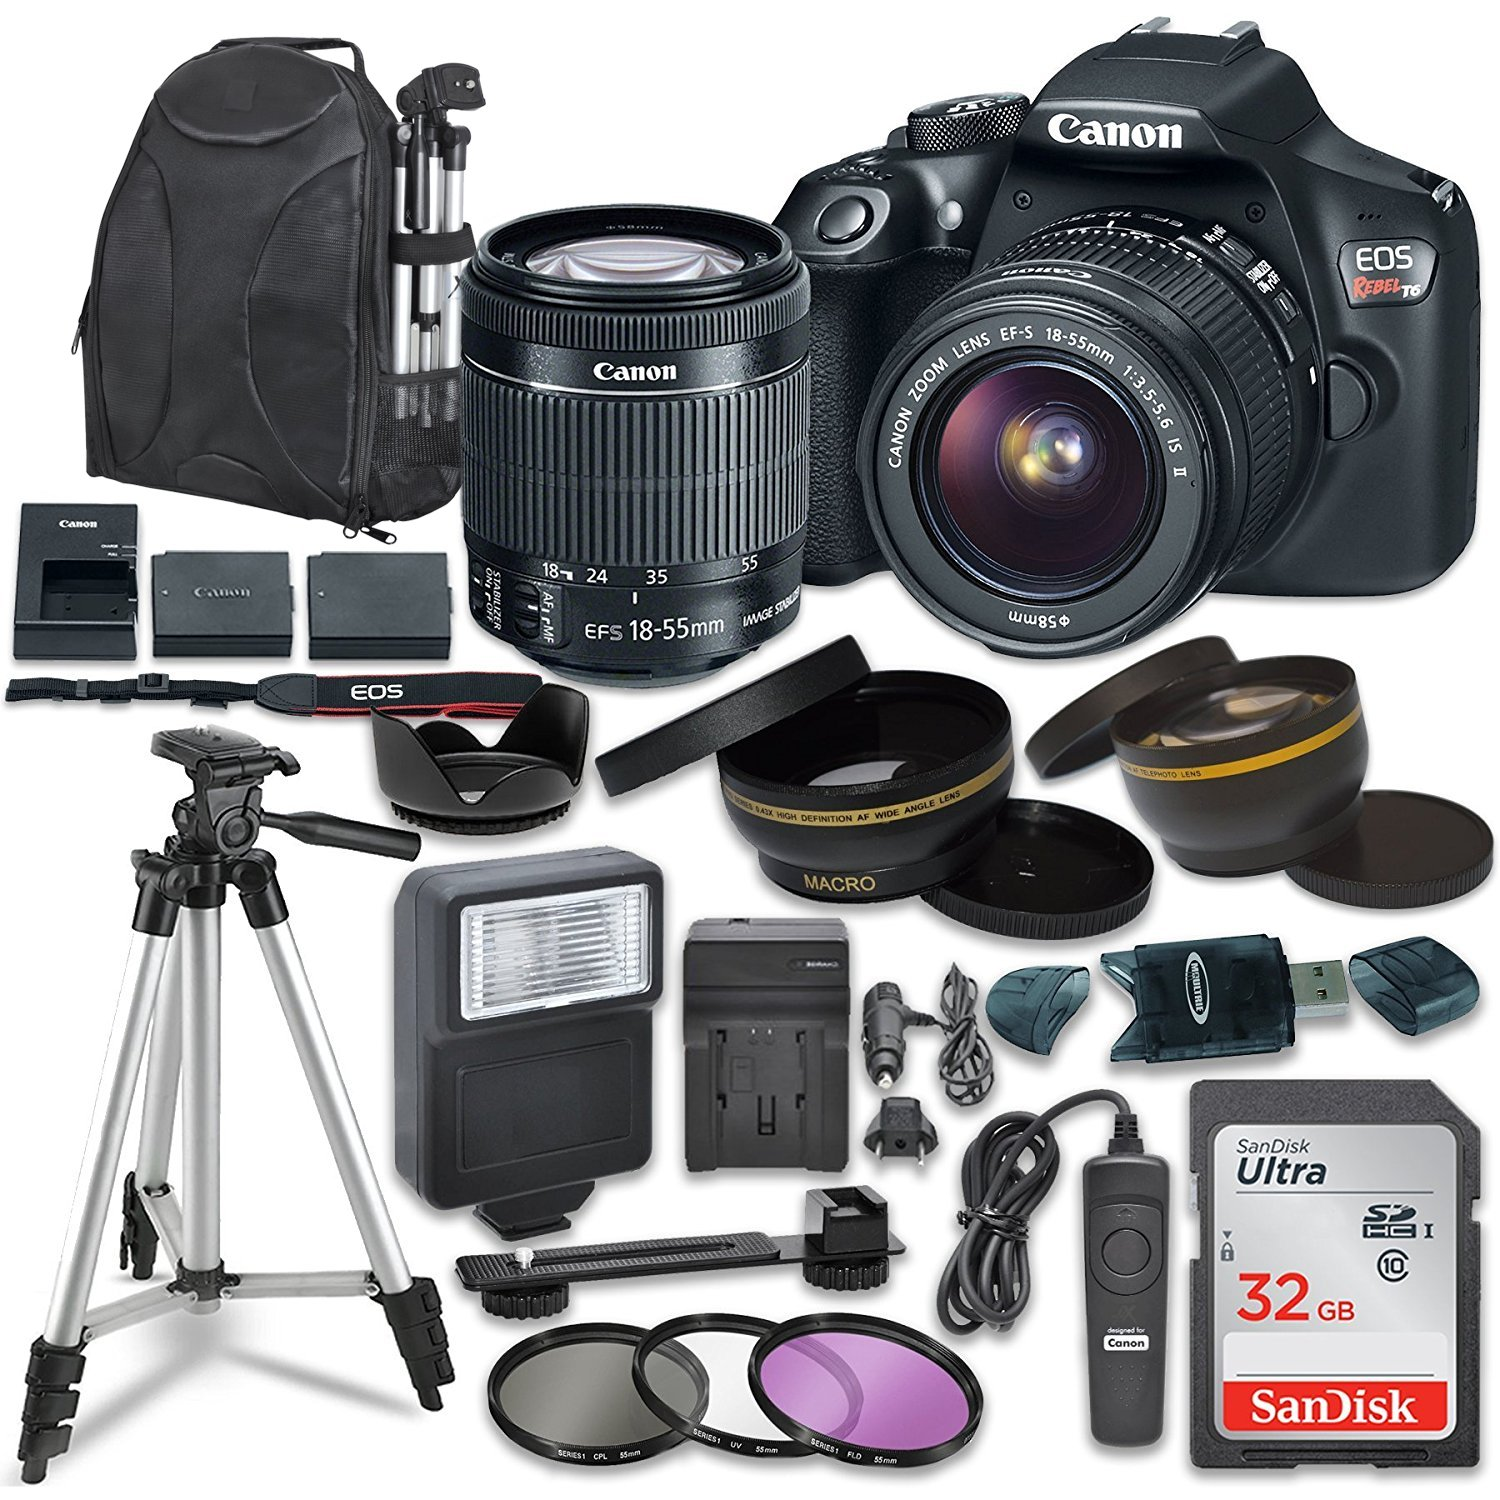 Canon EOS Rebel T6 Digital SLR Camera with Canon EF-S 18-55mm Image Stabilization II Lens, Sandisk 32GB SDHC Memory Cards, Accessory Bundle by Canon